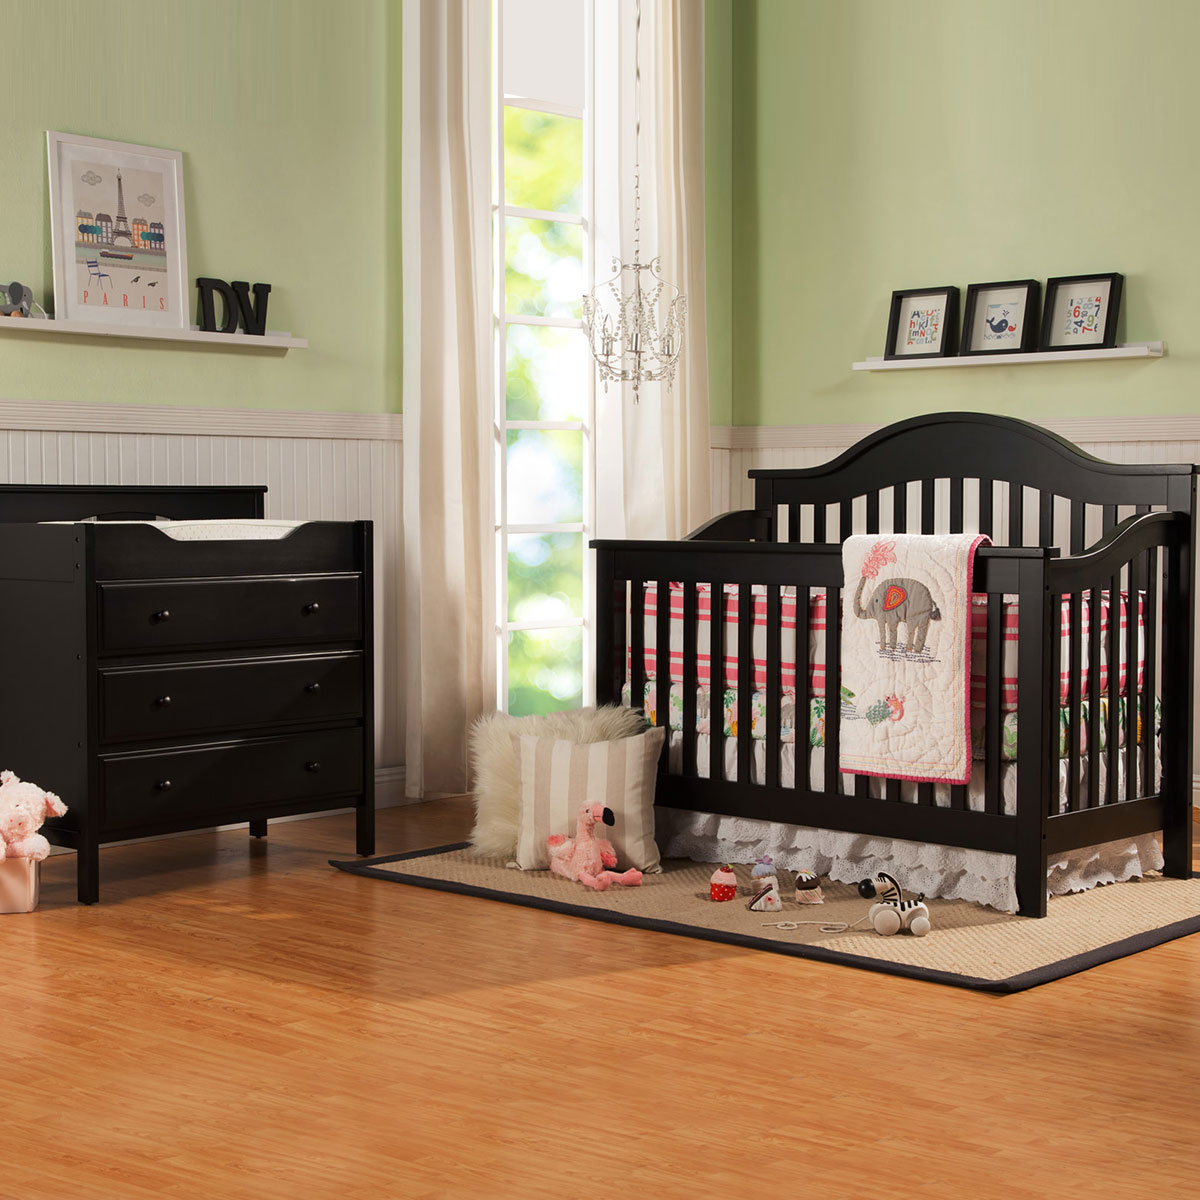 bedding toddler kalani nursery using also rail with vinci oak piece size davinci room and home awesome baby furniture crib convertible modern in recall interior mattress emily porter da design set for cribs